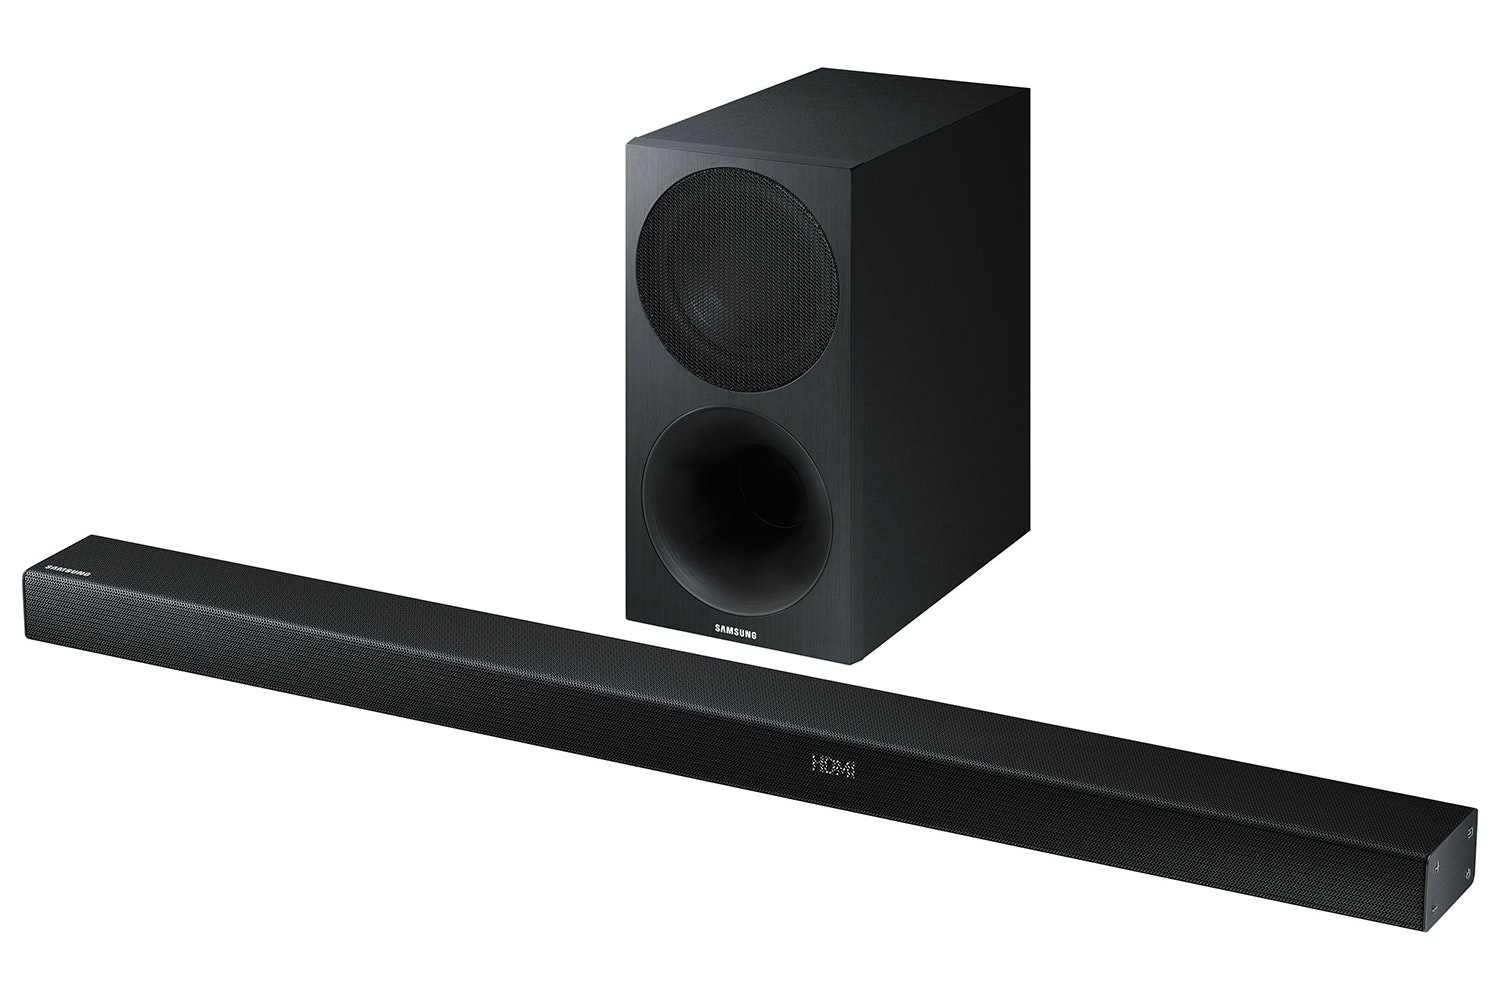 Samsung 3.1ch 340W Wireless Soundbar | HW-M550/XU